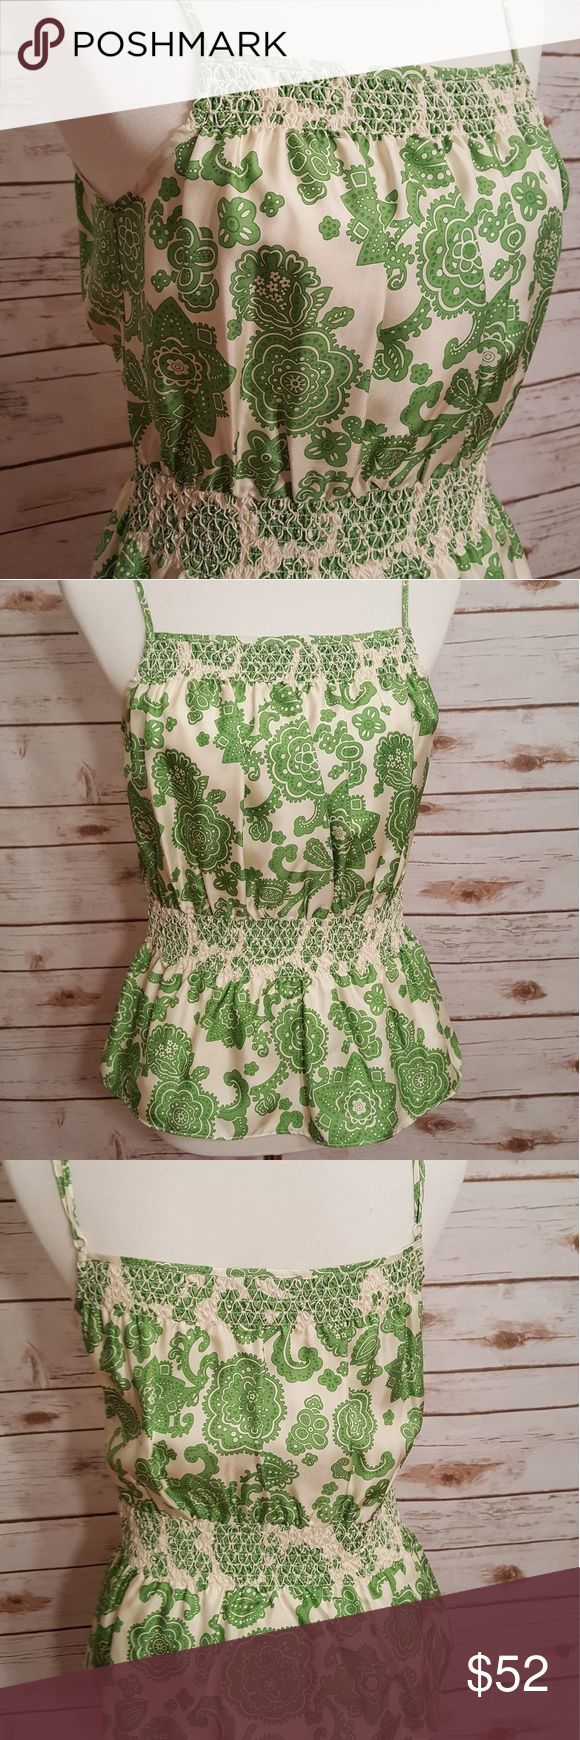 """100% silk summer top Absolutely beautiful green and white print Summer top. The smocking at the bodice and the waist is accented with an overlay of embroidery - exquisite craftsmanship. Straps are adjustable. Est 18 1/2"""" length from top of bodice to hem. 100% silk. Etcetera is a private label designer clothing company, designed in NYC and made with quality fabrics from Europe. Etcetera clothing is not sold in stores or online, it is only available for purchase through private consultants…"""